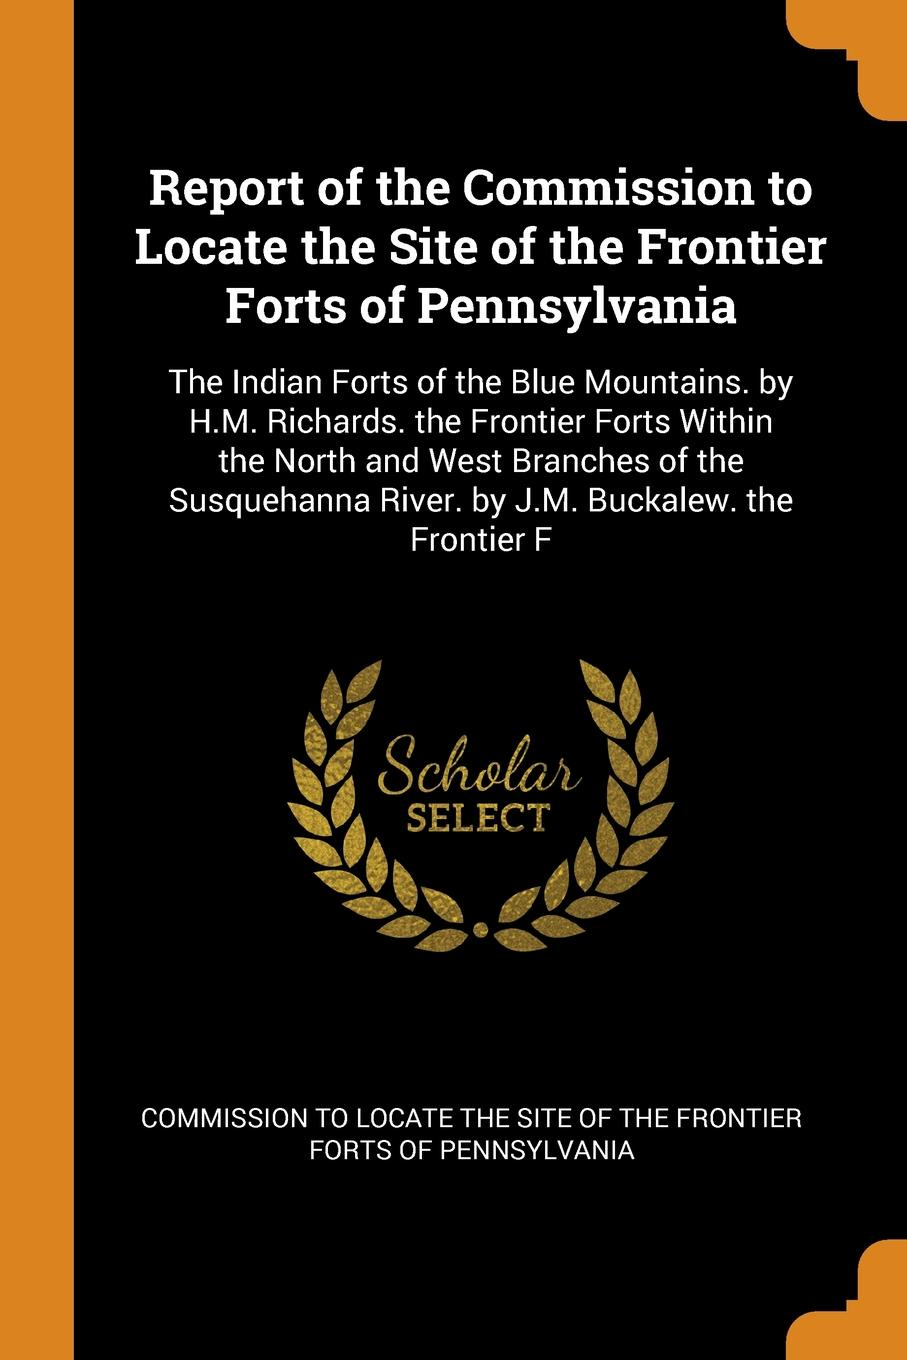 Report of the Commission to Locate Site Frontier Forts Pennsylvania. The Indian Blue Mountains. by H.M. Richards. Within North and West Branches Susquehanna River. J.M. Buckalew. Fron...